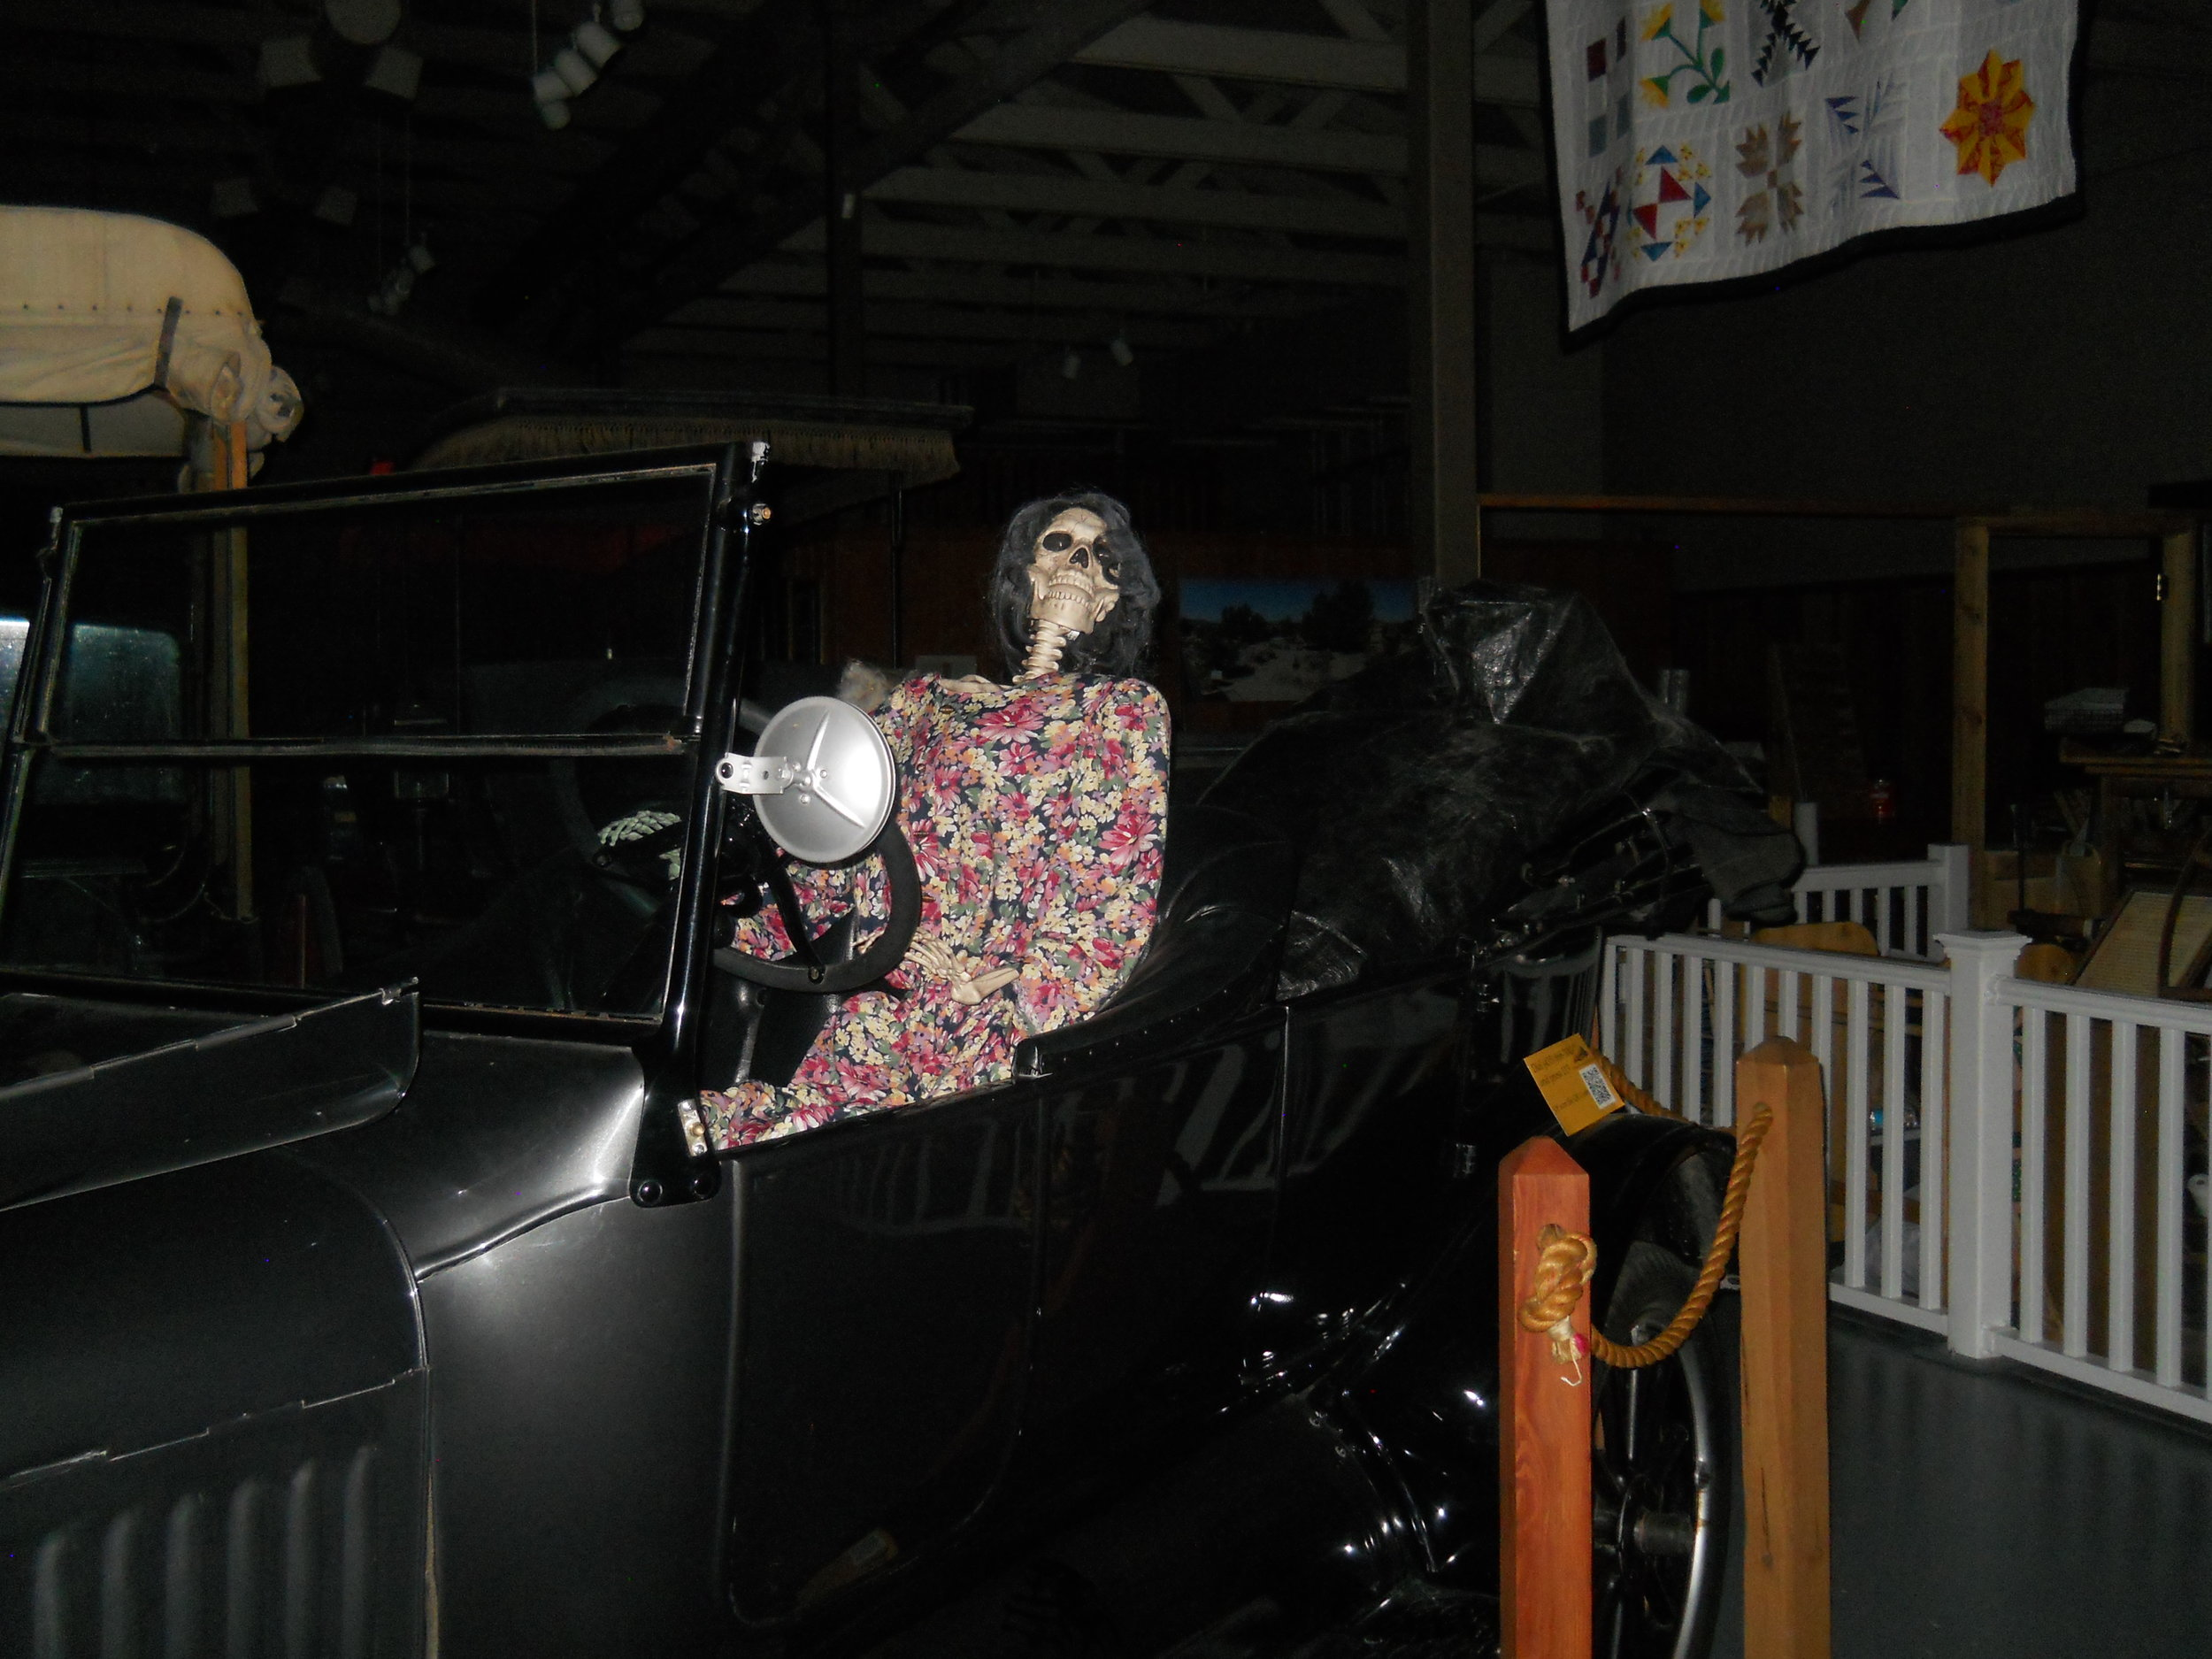 The Model T isn't for everyone.